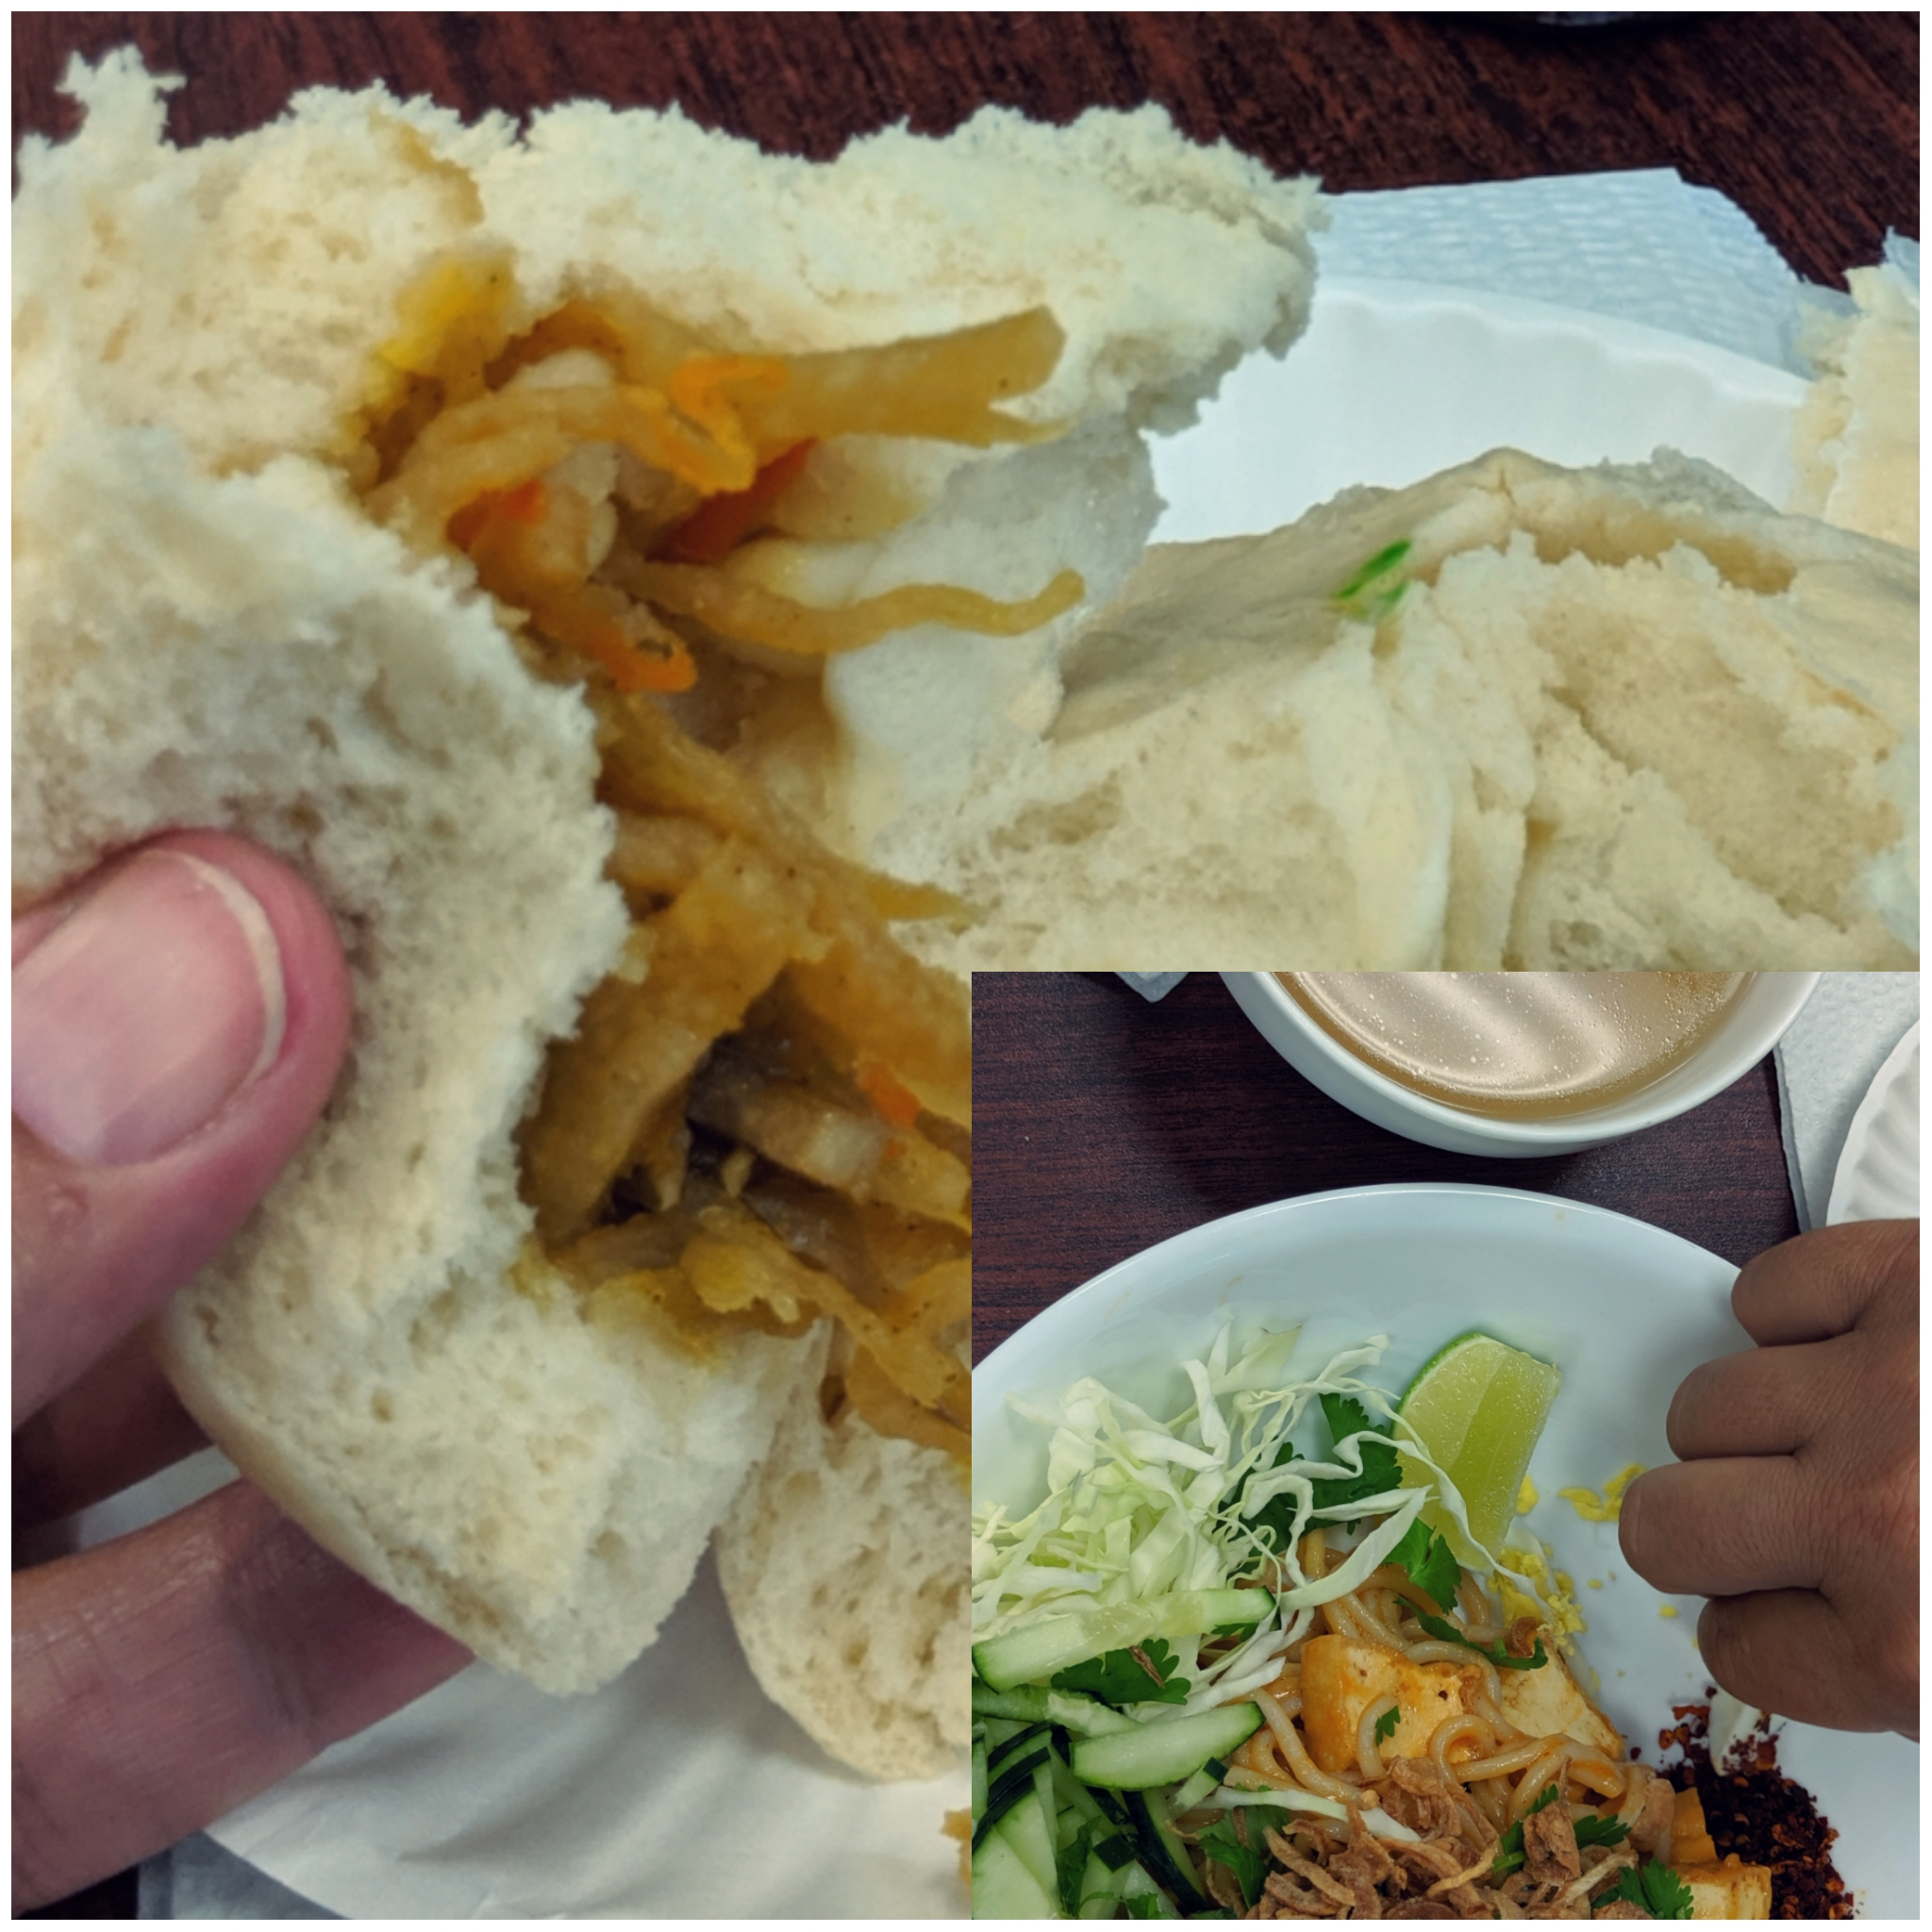 The vegetable bao (bun) from  007 Chinese Food  and that plate of deliciouus garlic noodle salad from  Rakhapura Mutee and Sushi  brought China and Burma to my lunch that day at  West Side Bazaar !